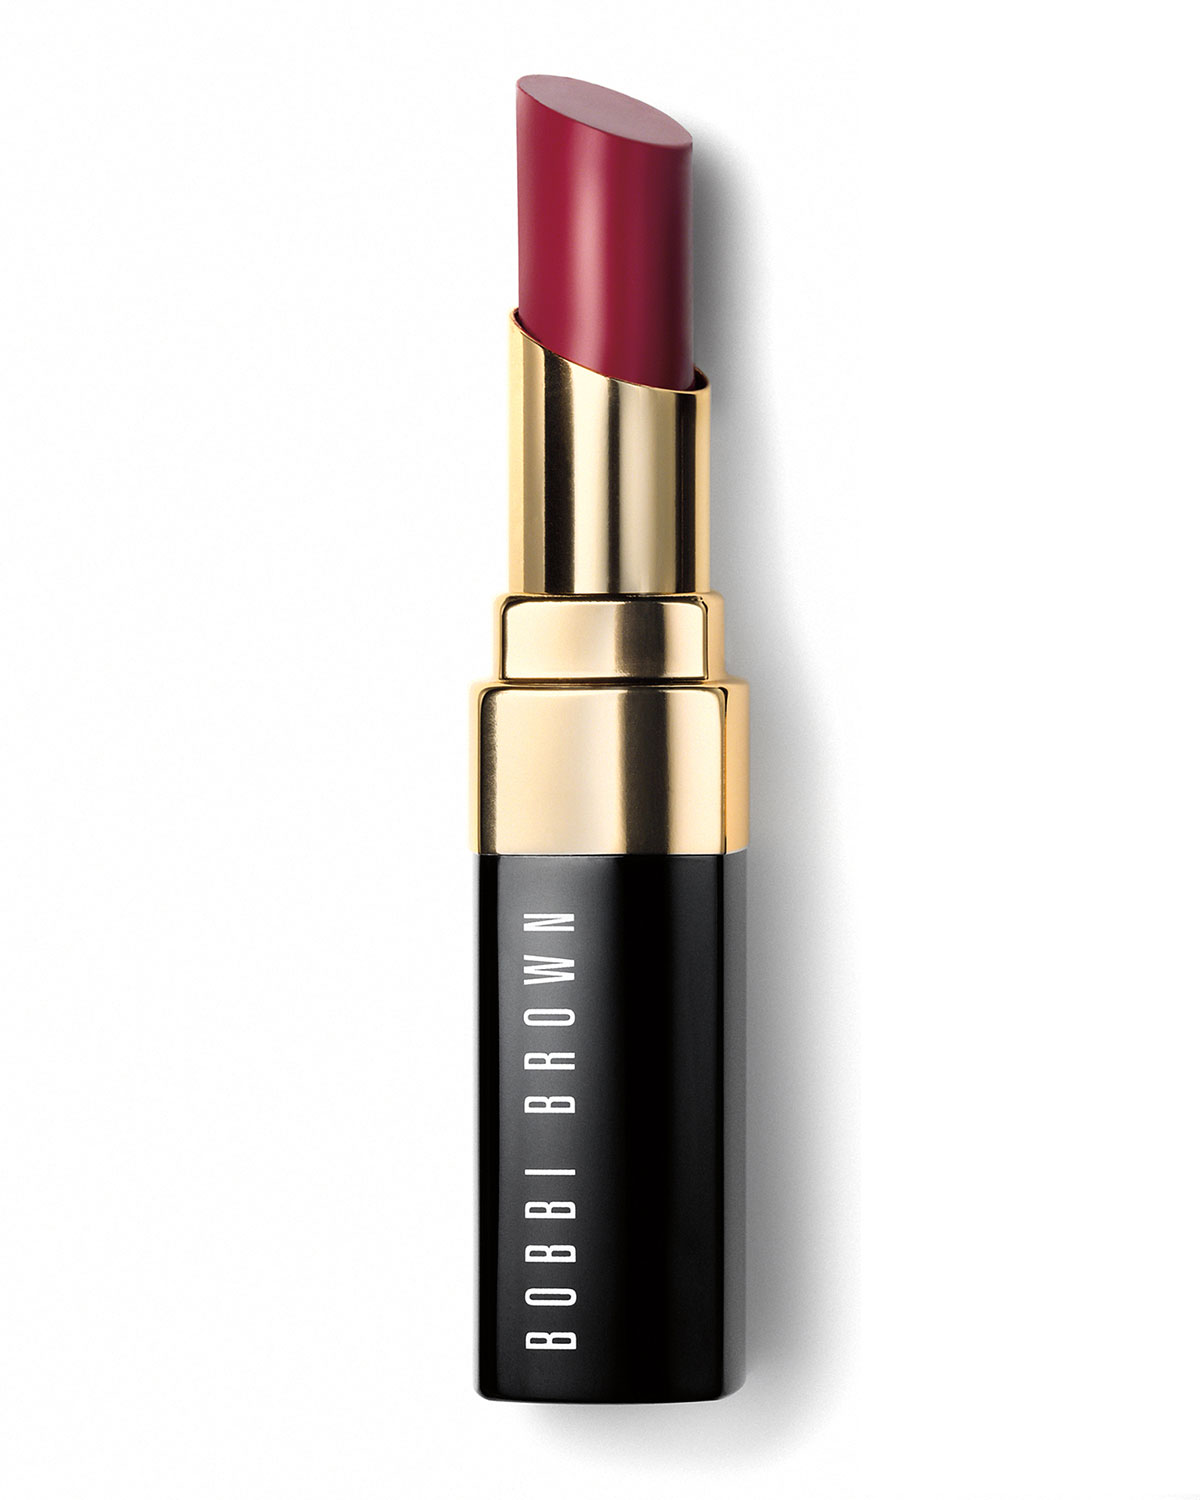 Nourishing Lip Color Oil Indused Shine, Sweet Apricot